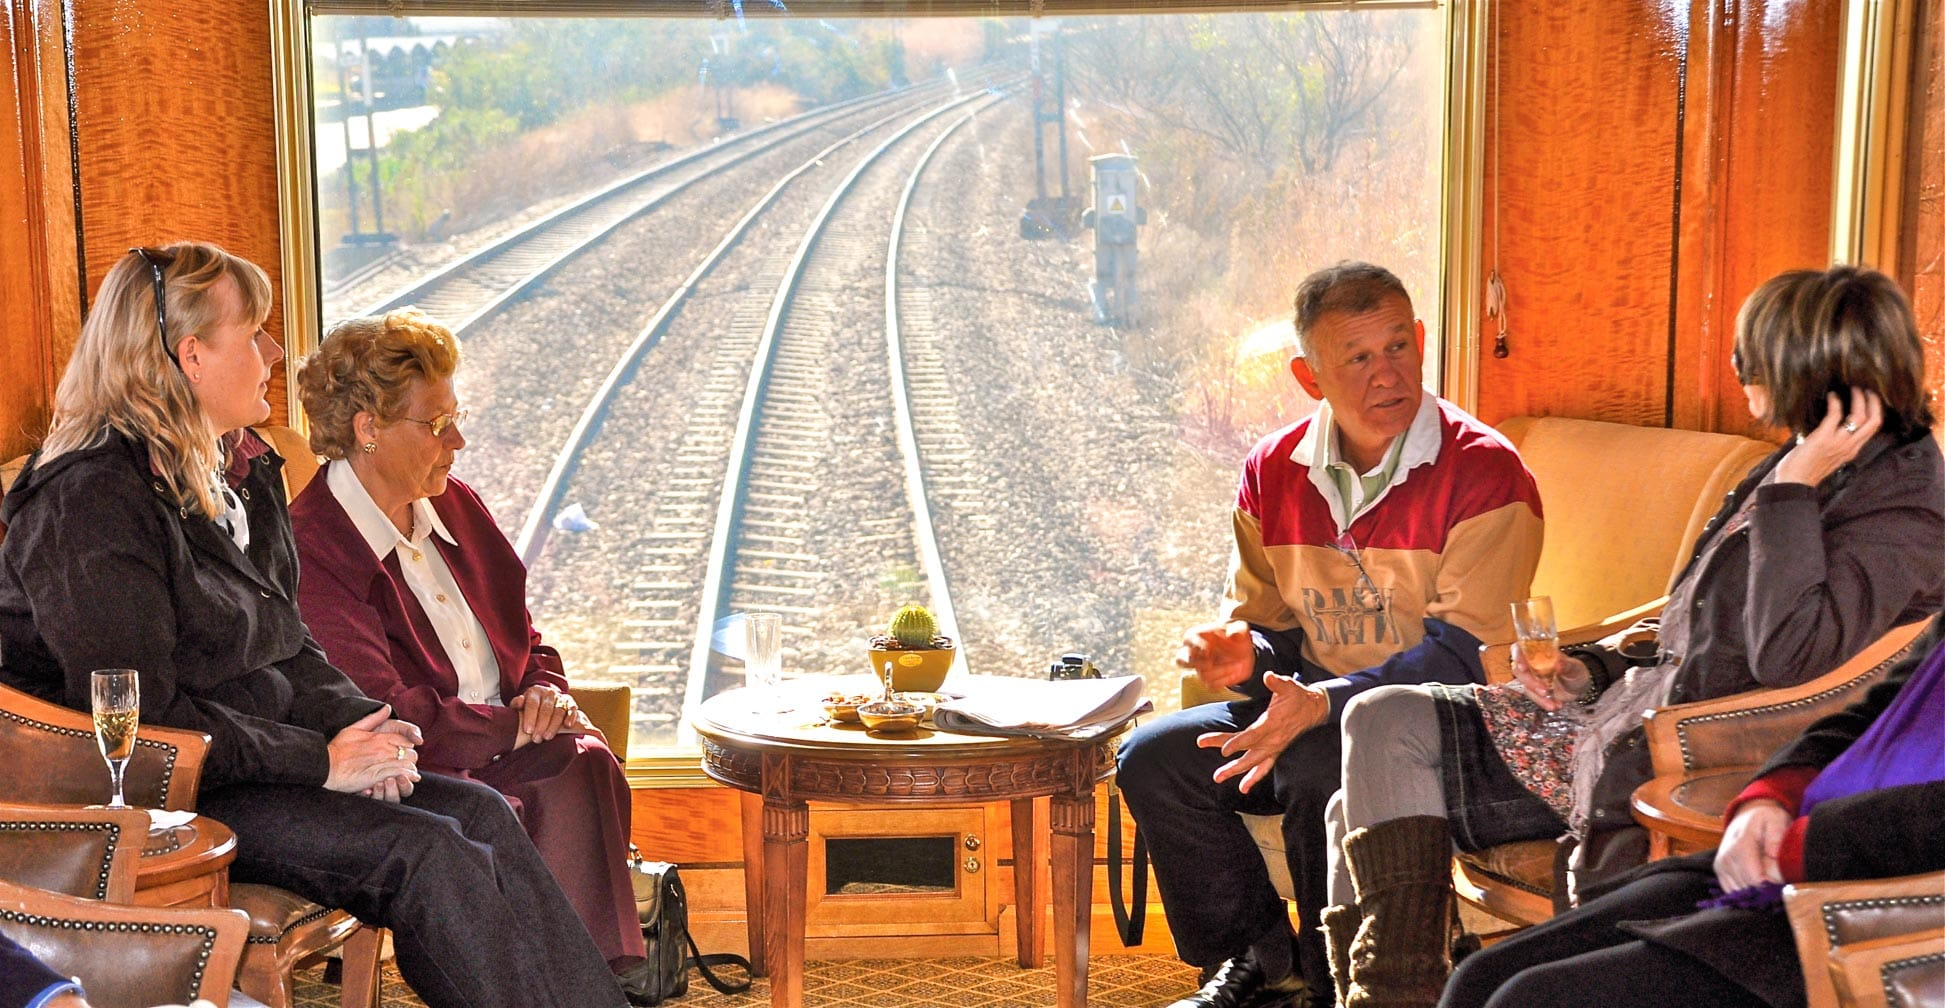 Guests relaxing in the observation car on The Blue Train